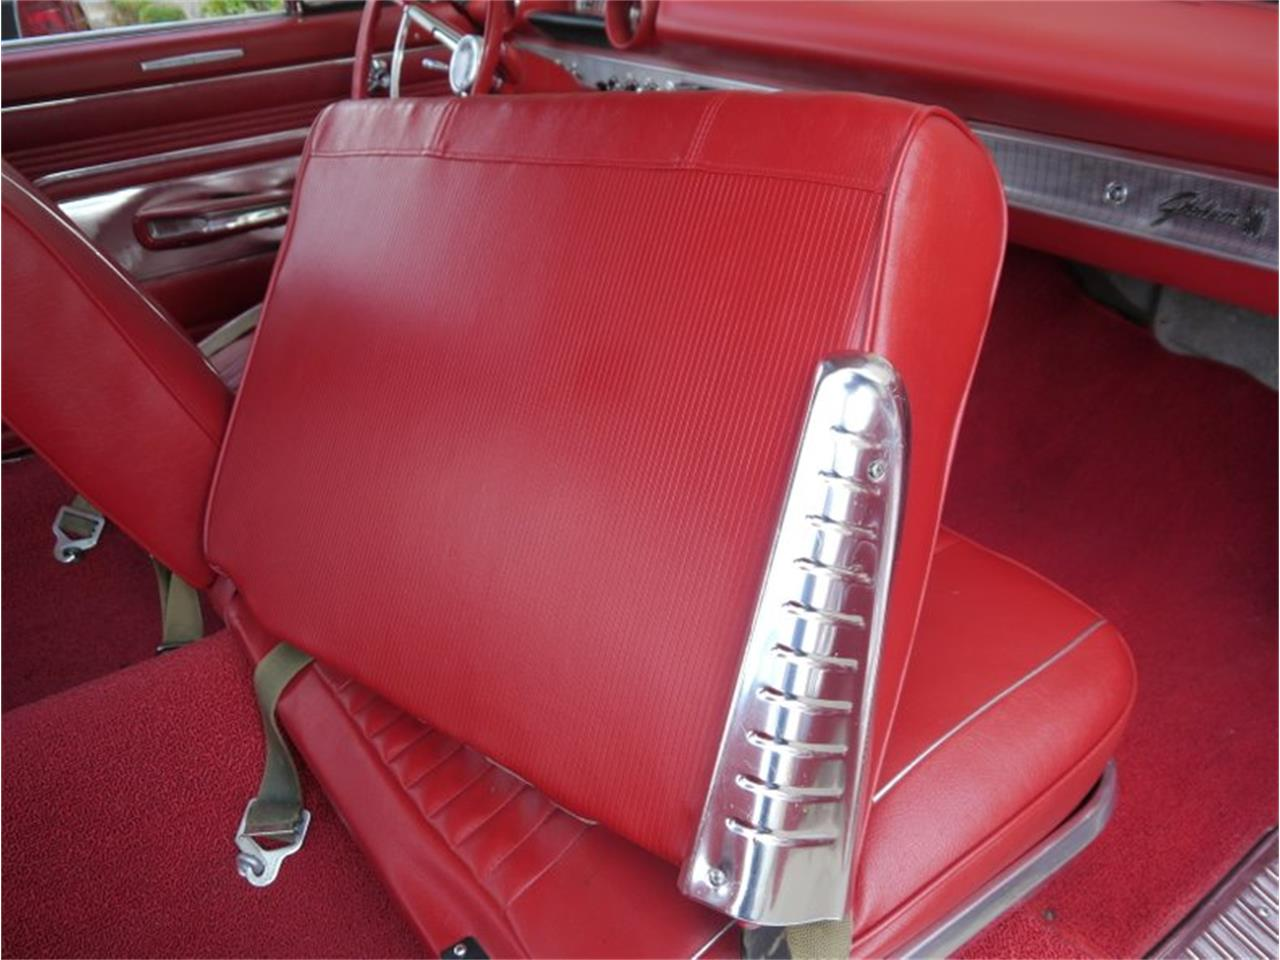 1963 Ford Galaxie 500 for sale in Alsip, IL – photo 81